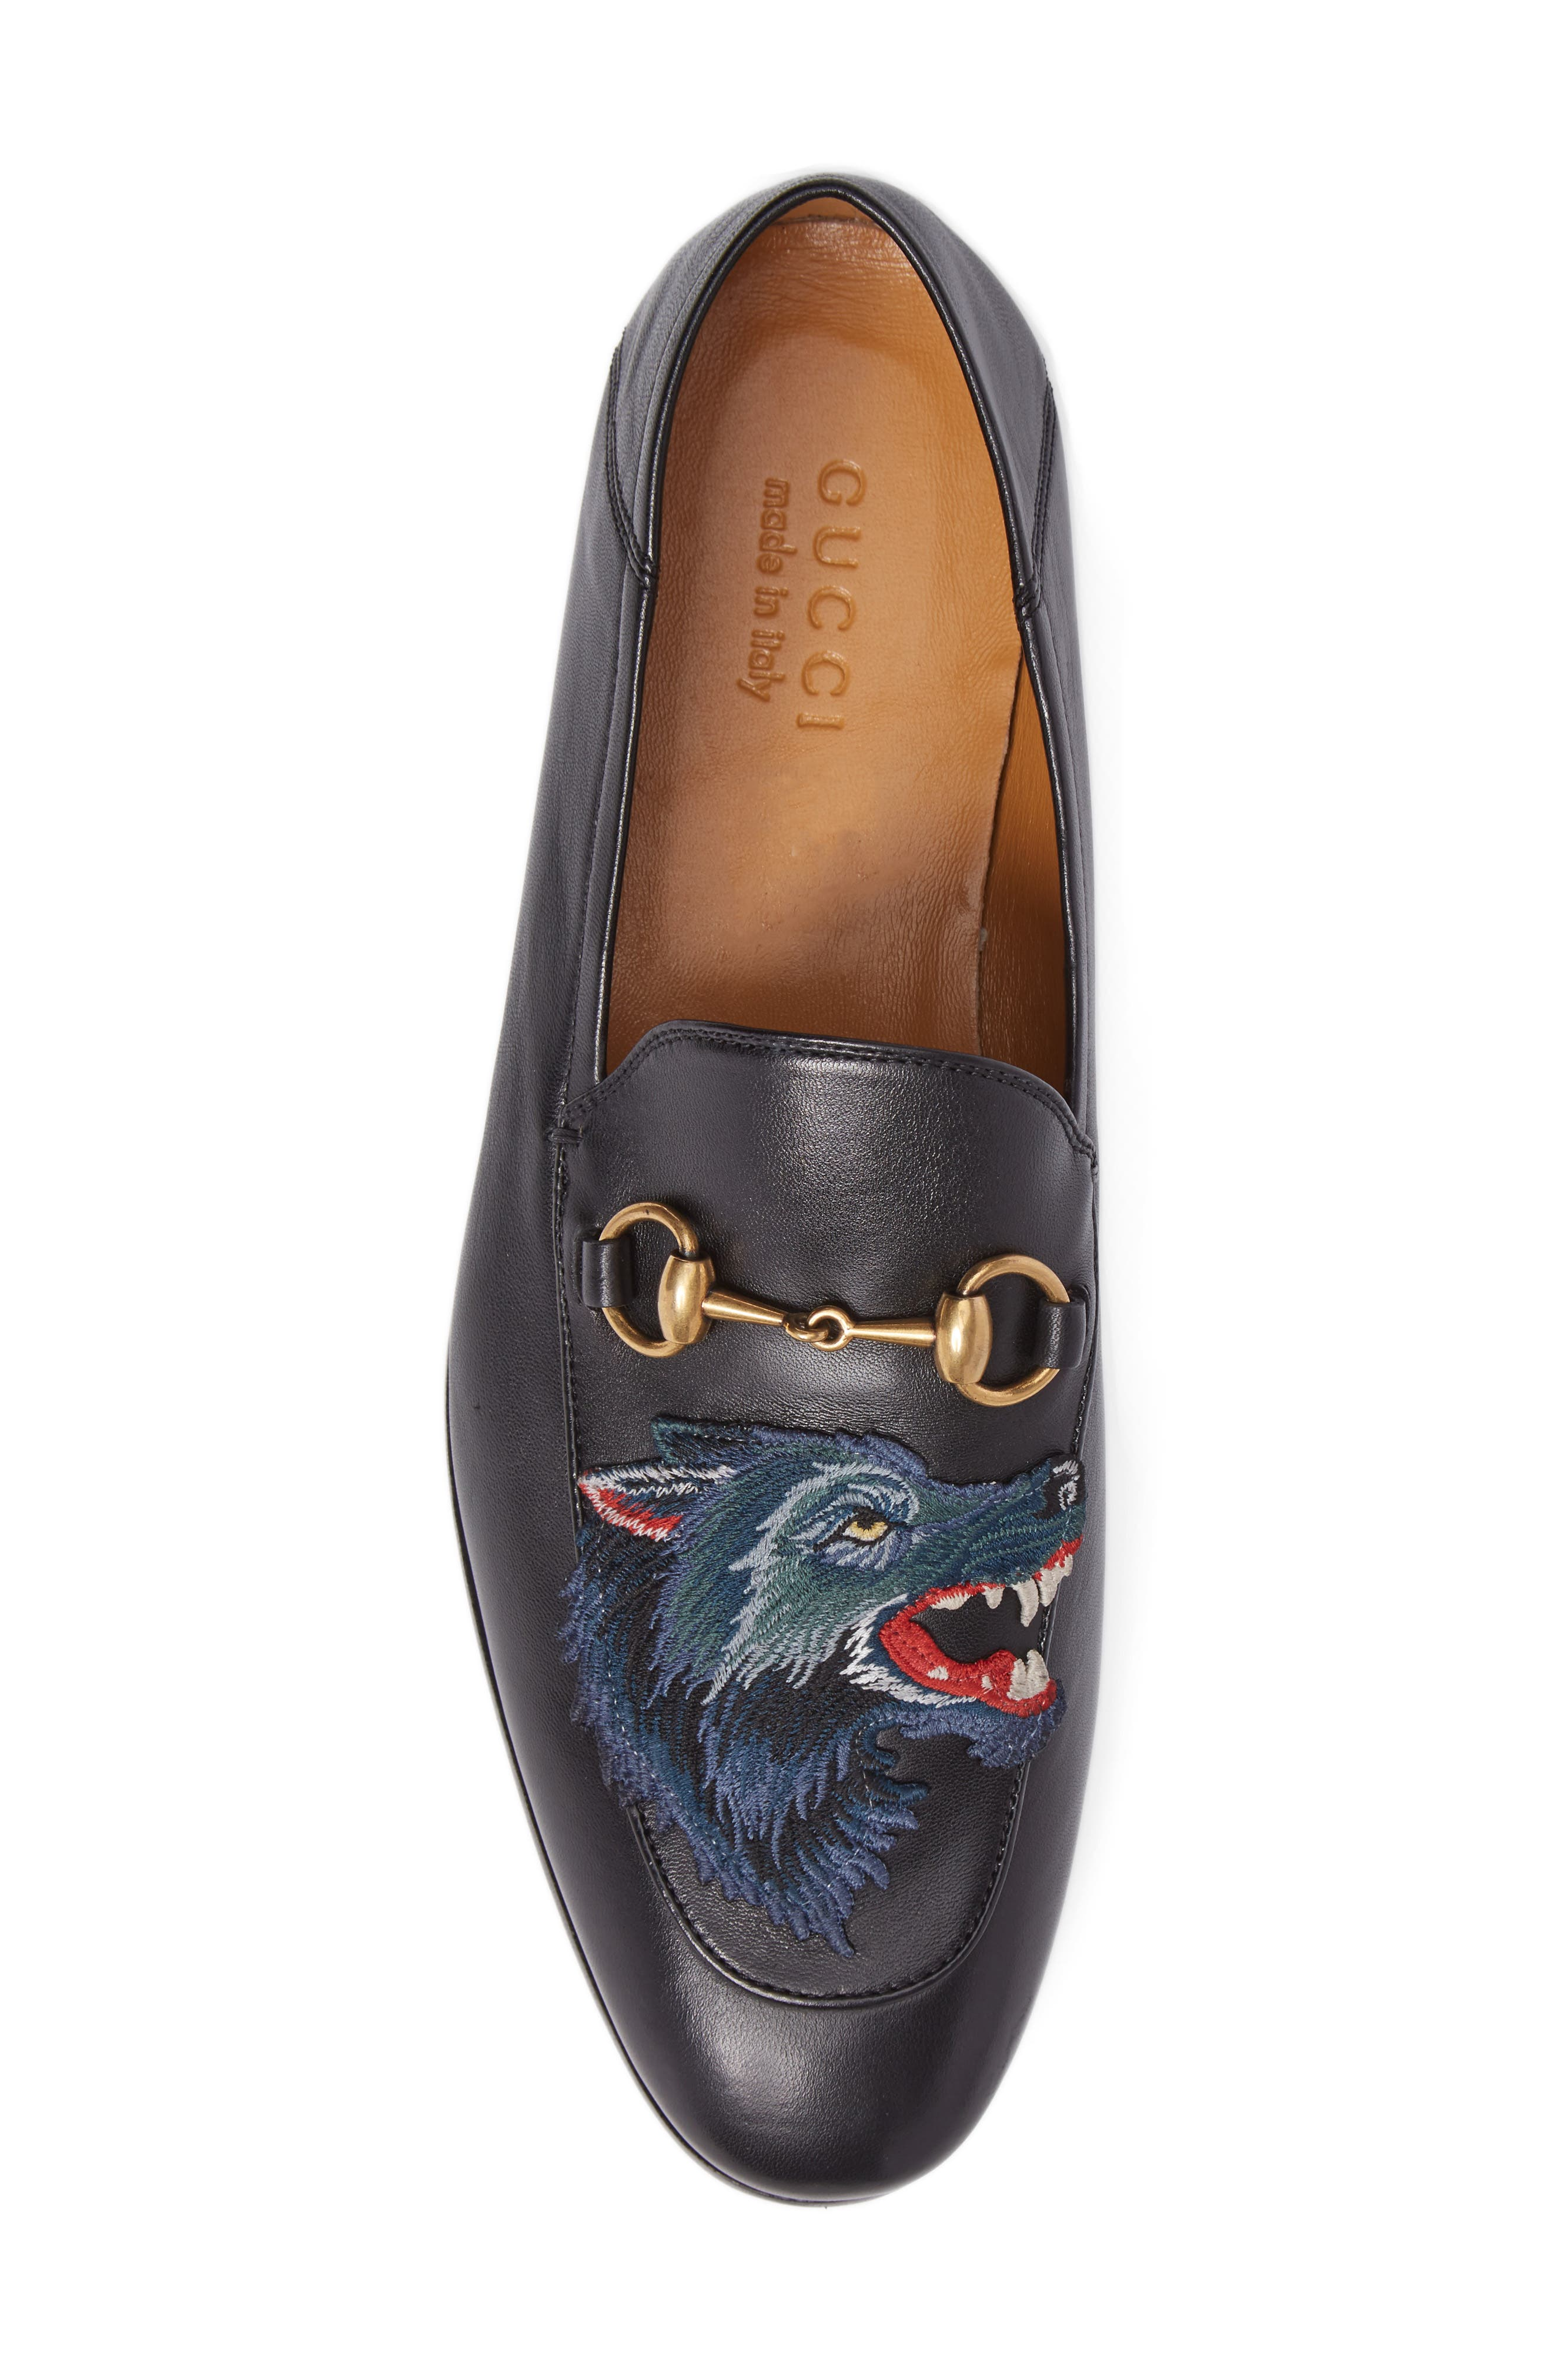 Wolf Leather Loafer,                             Alternate thumbnail 5, color,                             Black/ Blue